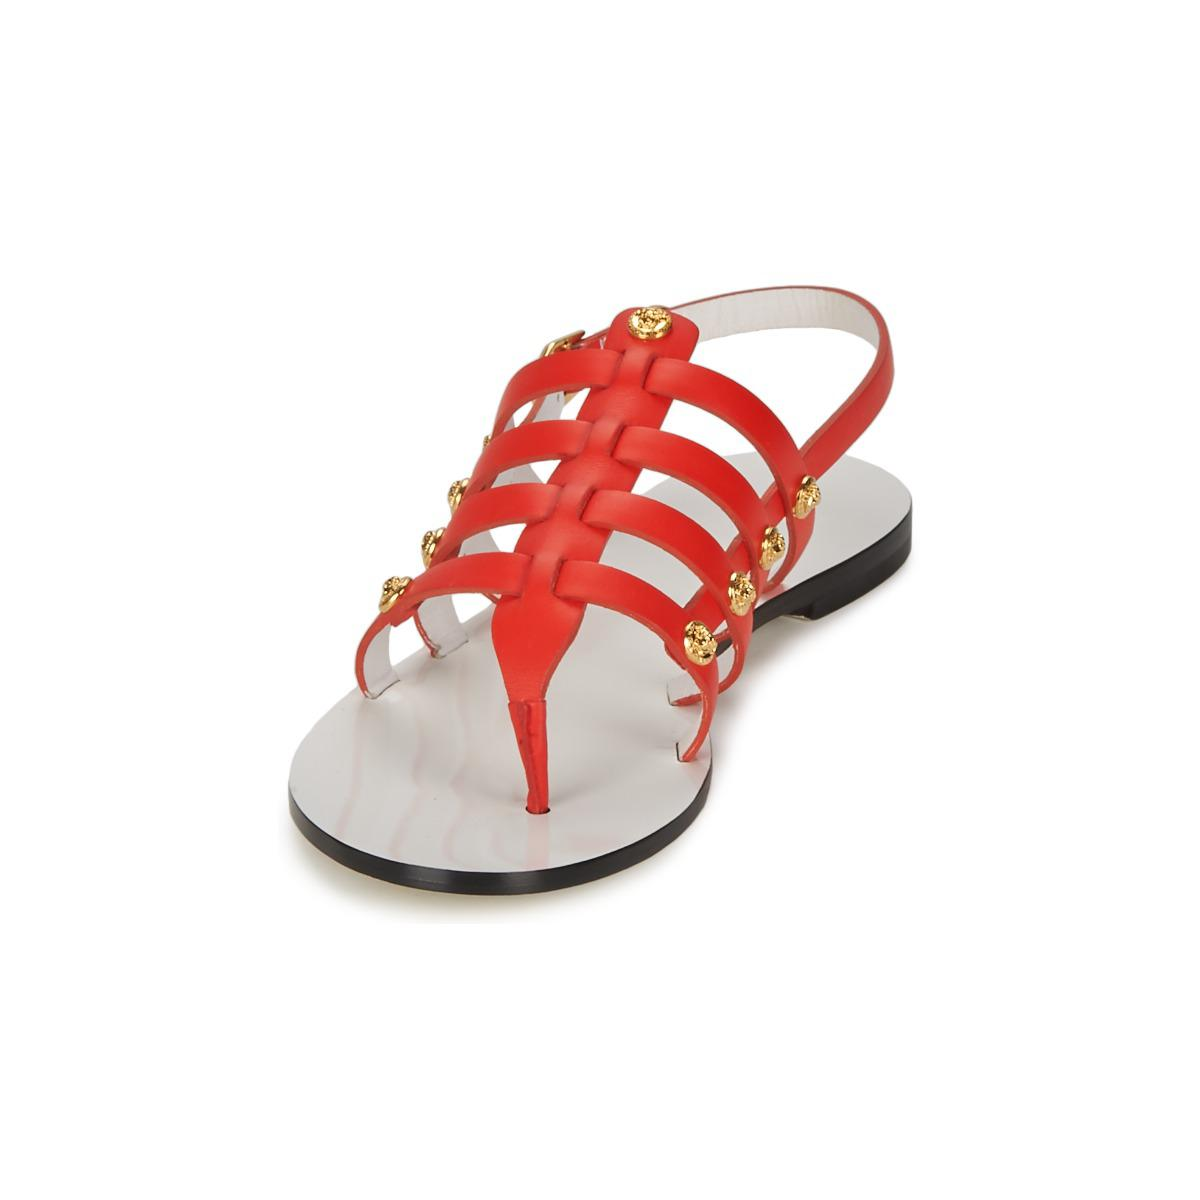 VERSACE DSL944C women's Sandals in Outlet Very Cheap Sale Cheap Price edMTRuCHa